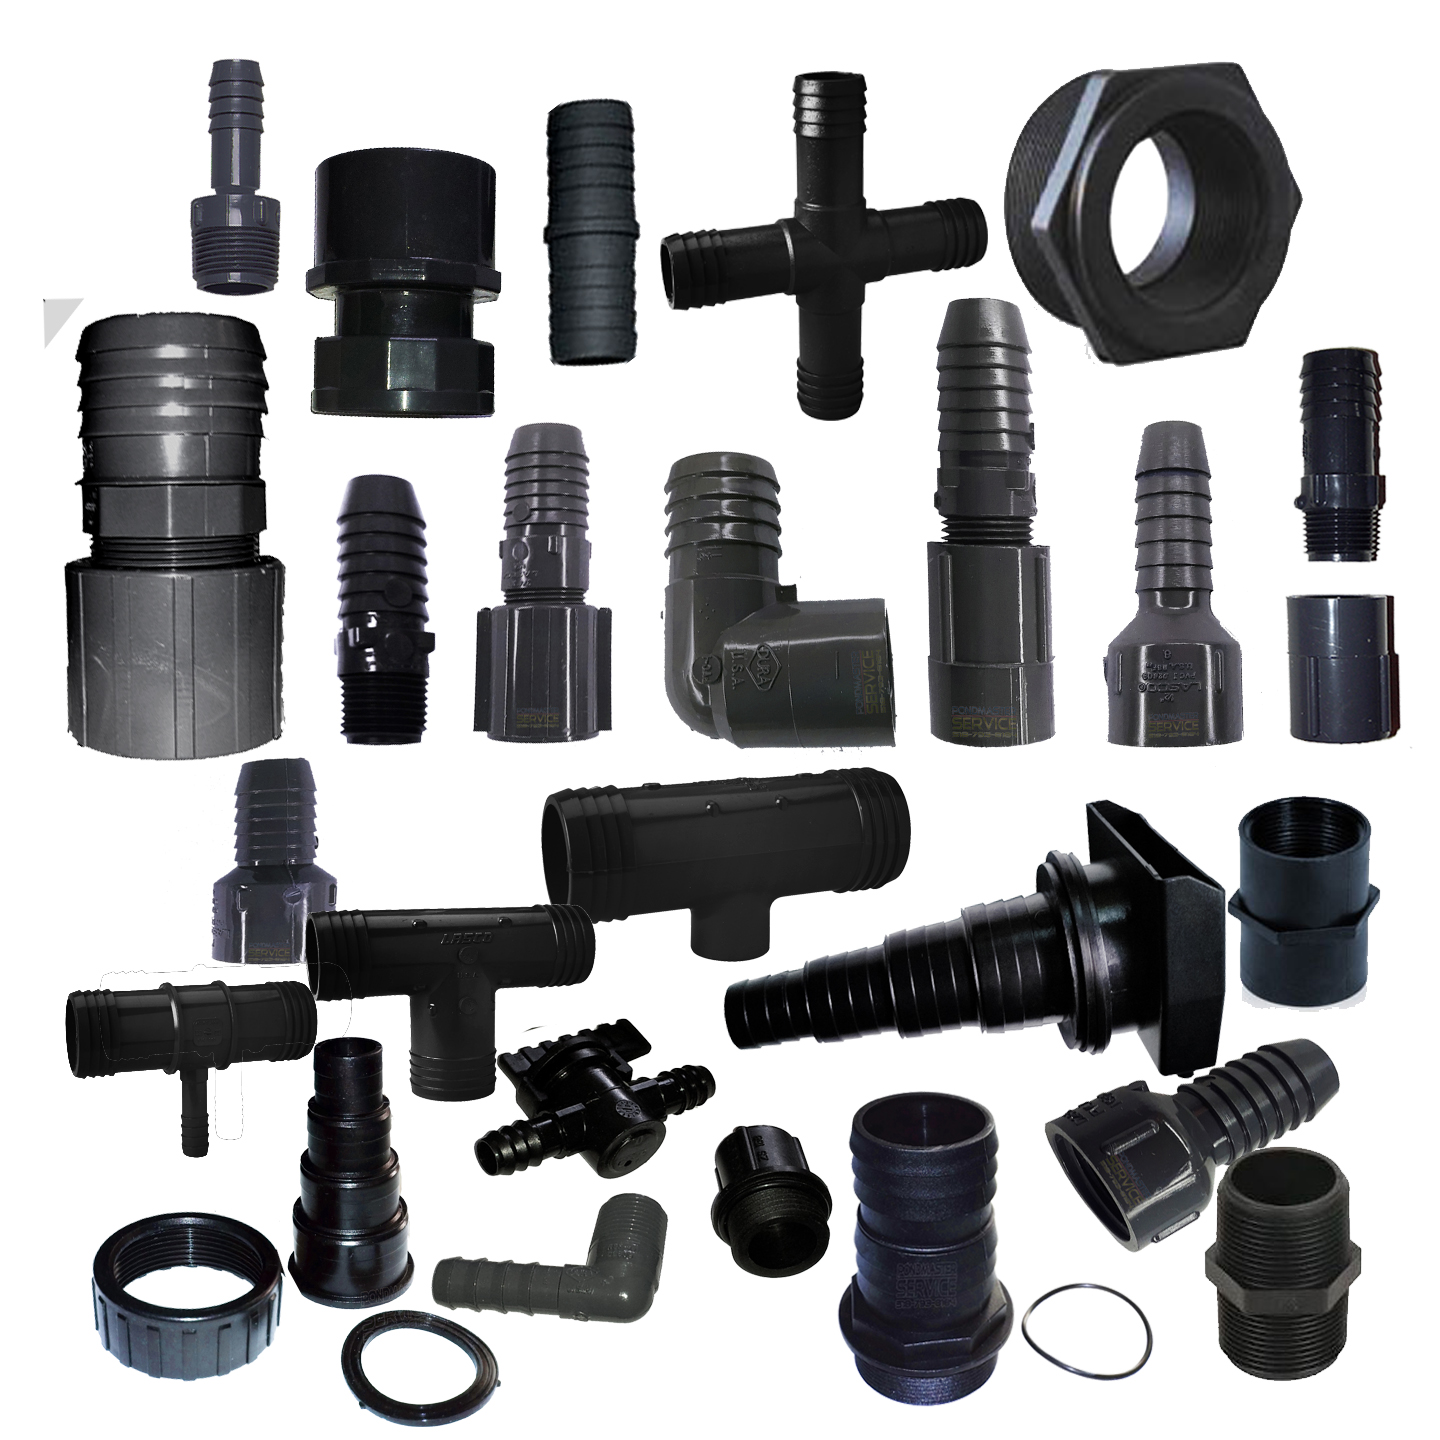 Assorted plumbing fittings and connectors for your pond for Garden pond plumbing design